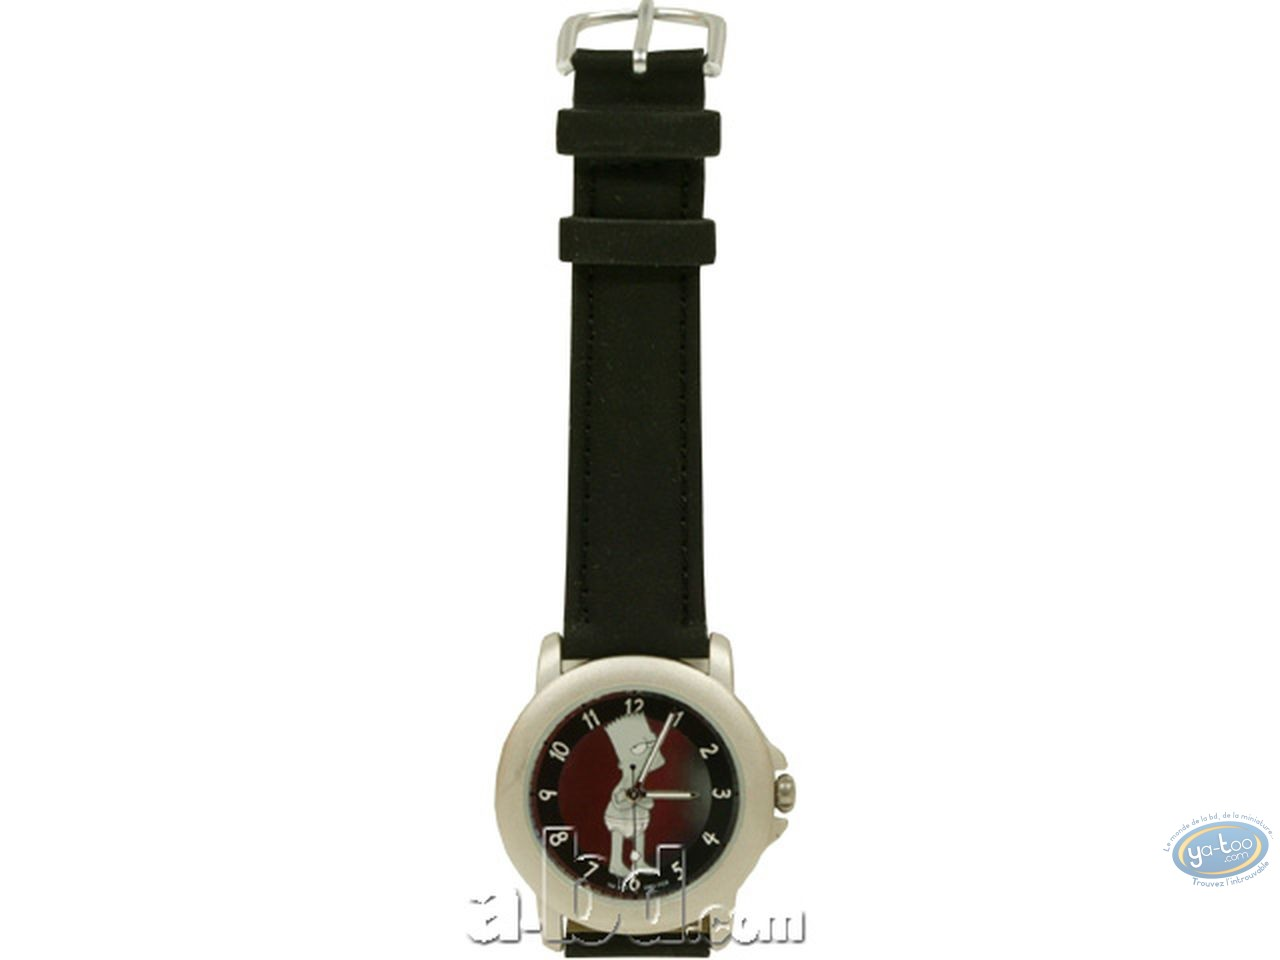 Clocks & Watches, Simpson (Les) : Watch, The Simpsons : Bart underwear (leather strap)